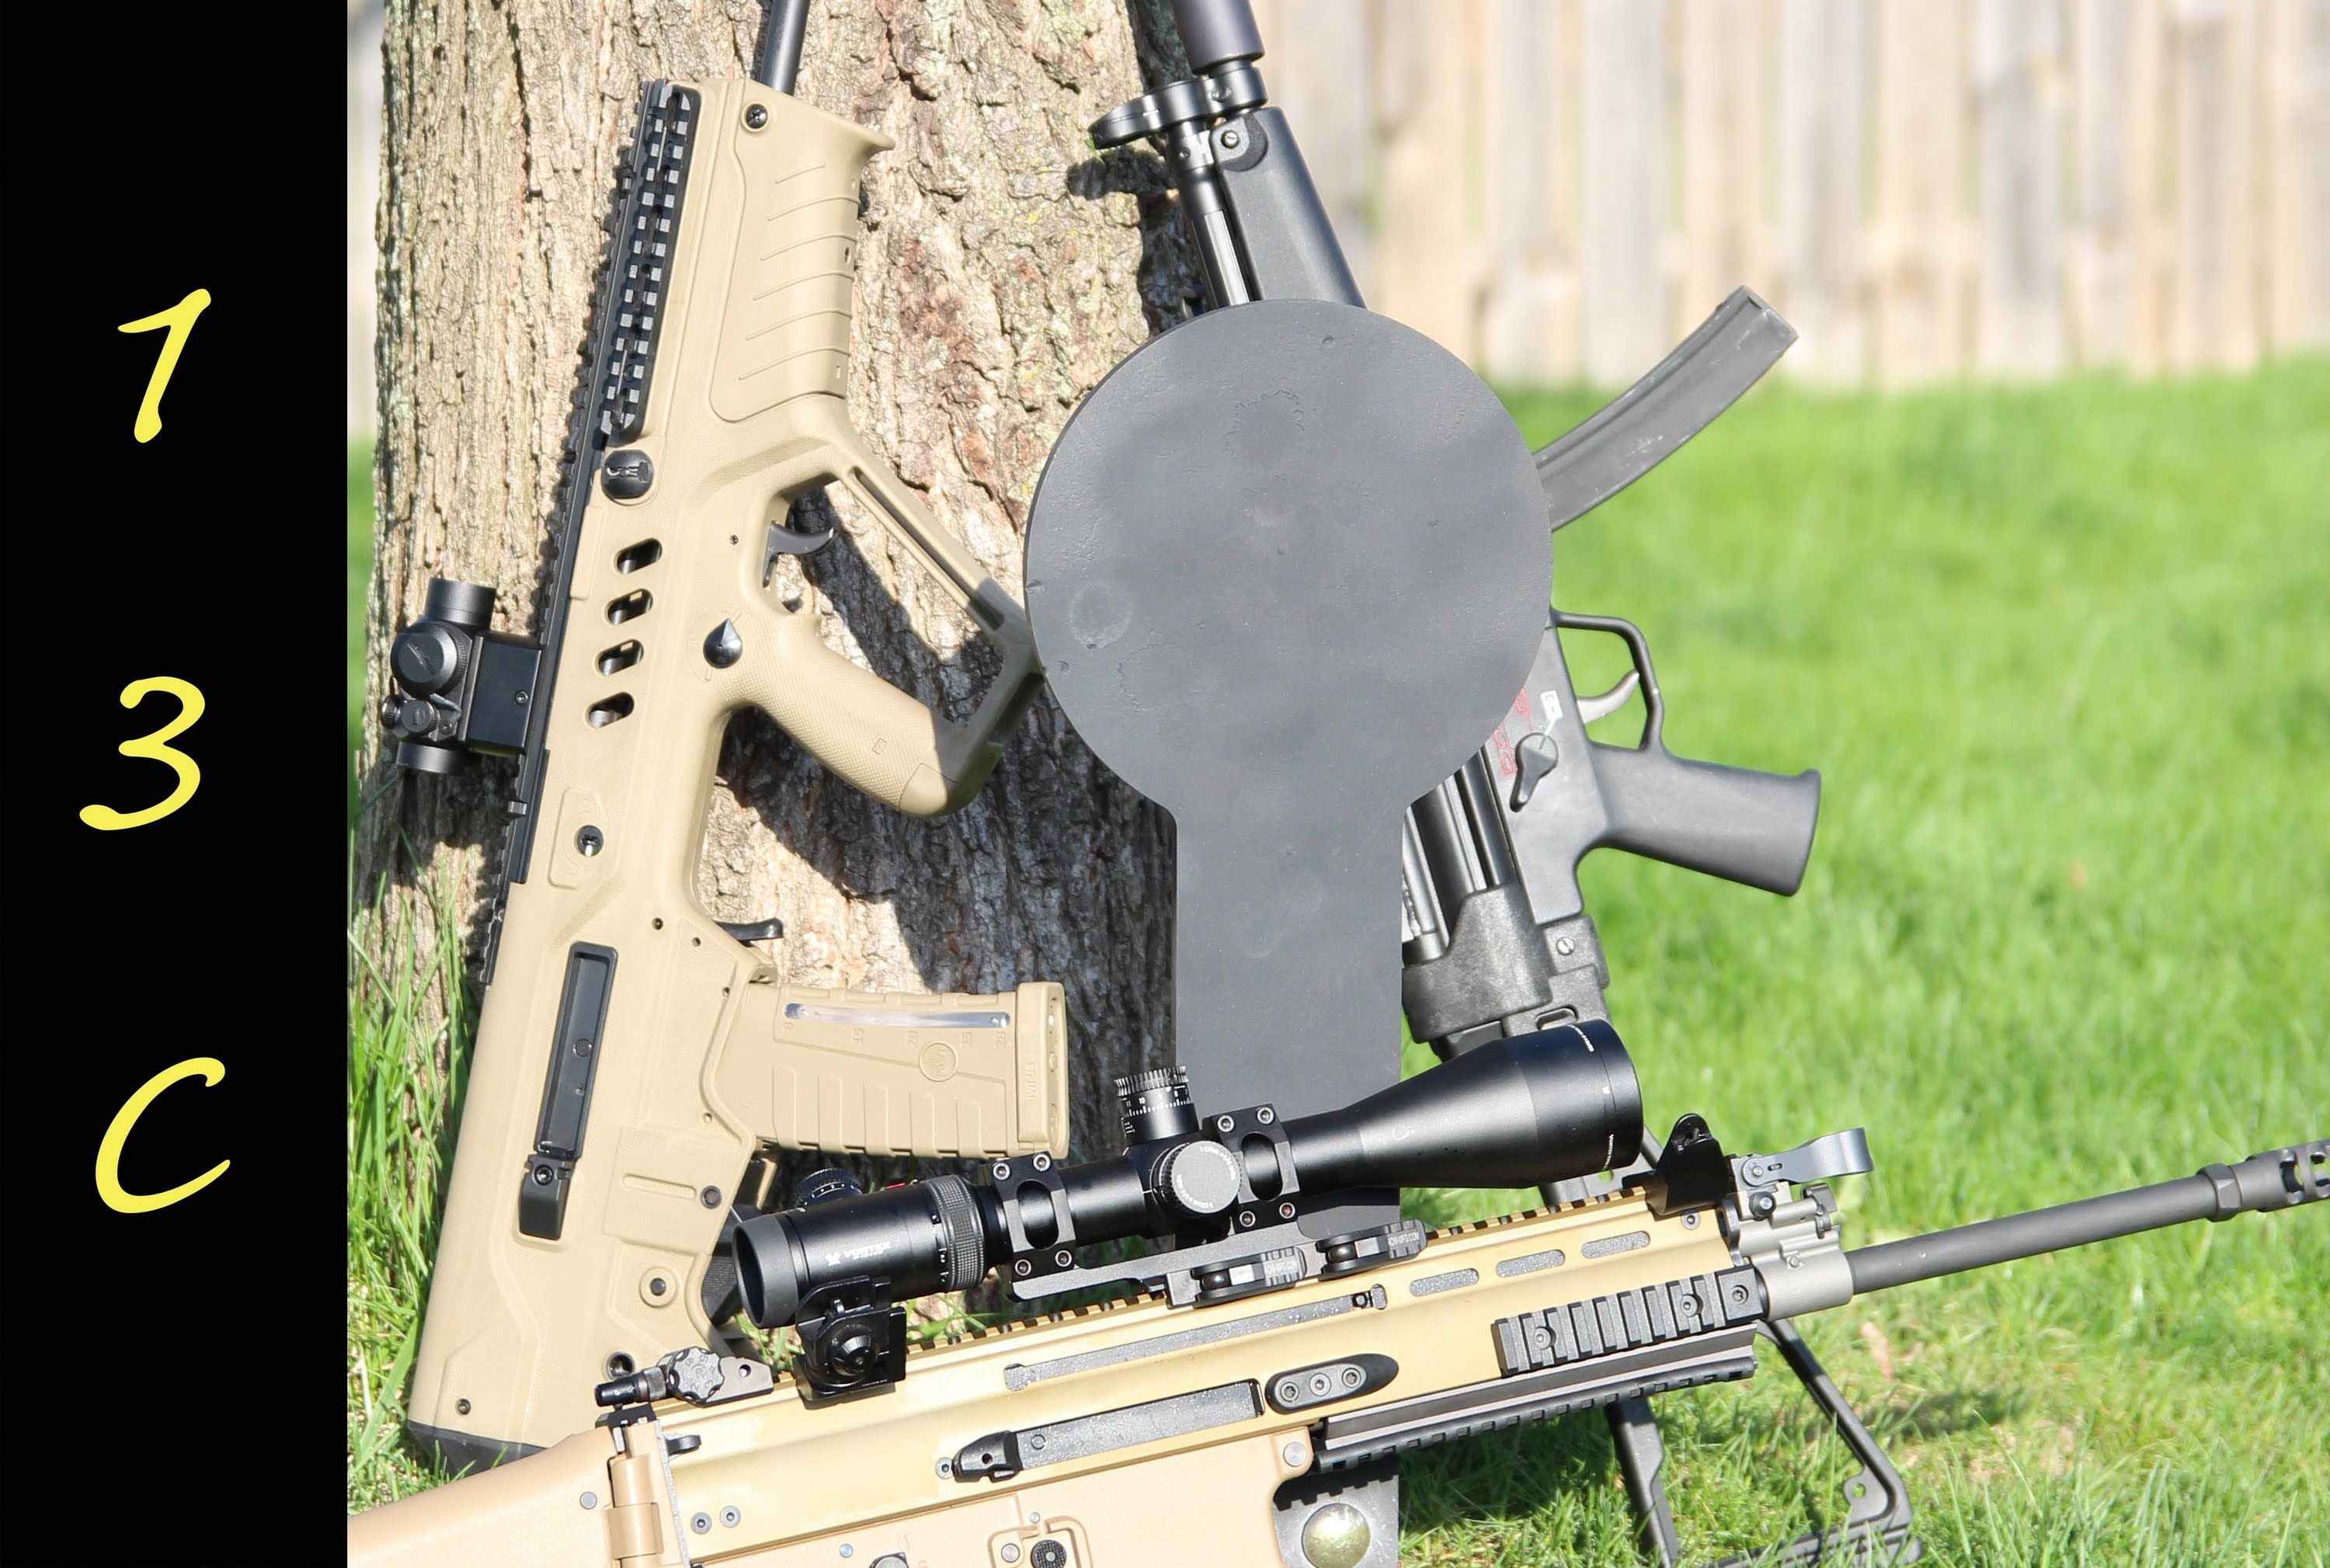 Shooting Steel: Stake and Shoot target from Challenge Targets Stake-N-Shoot